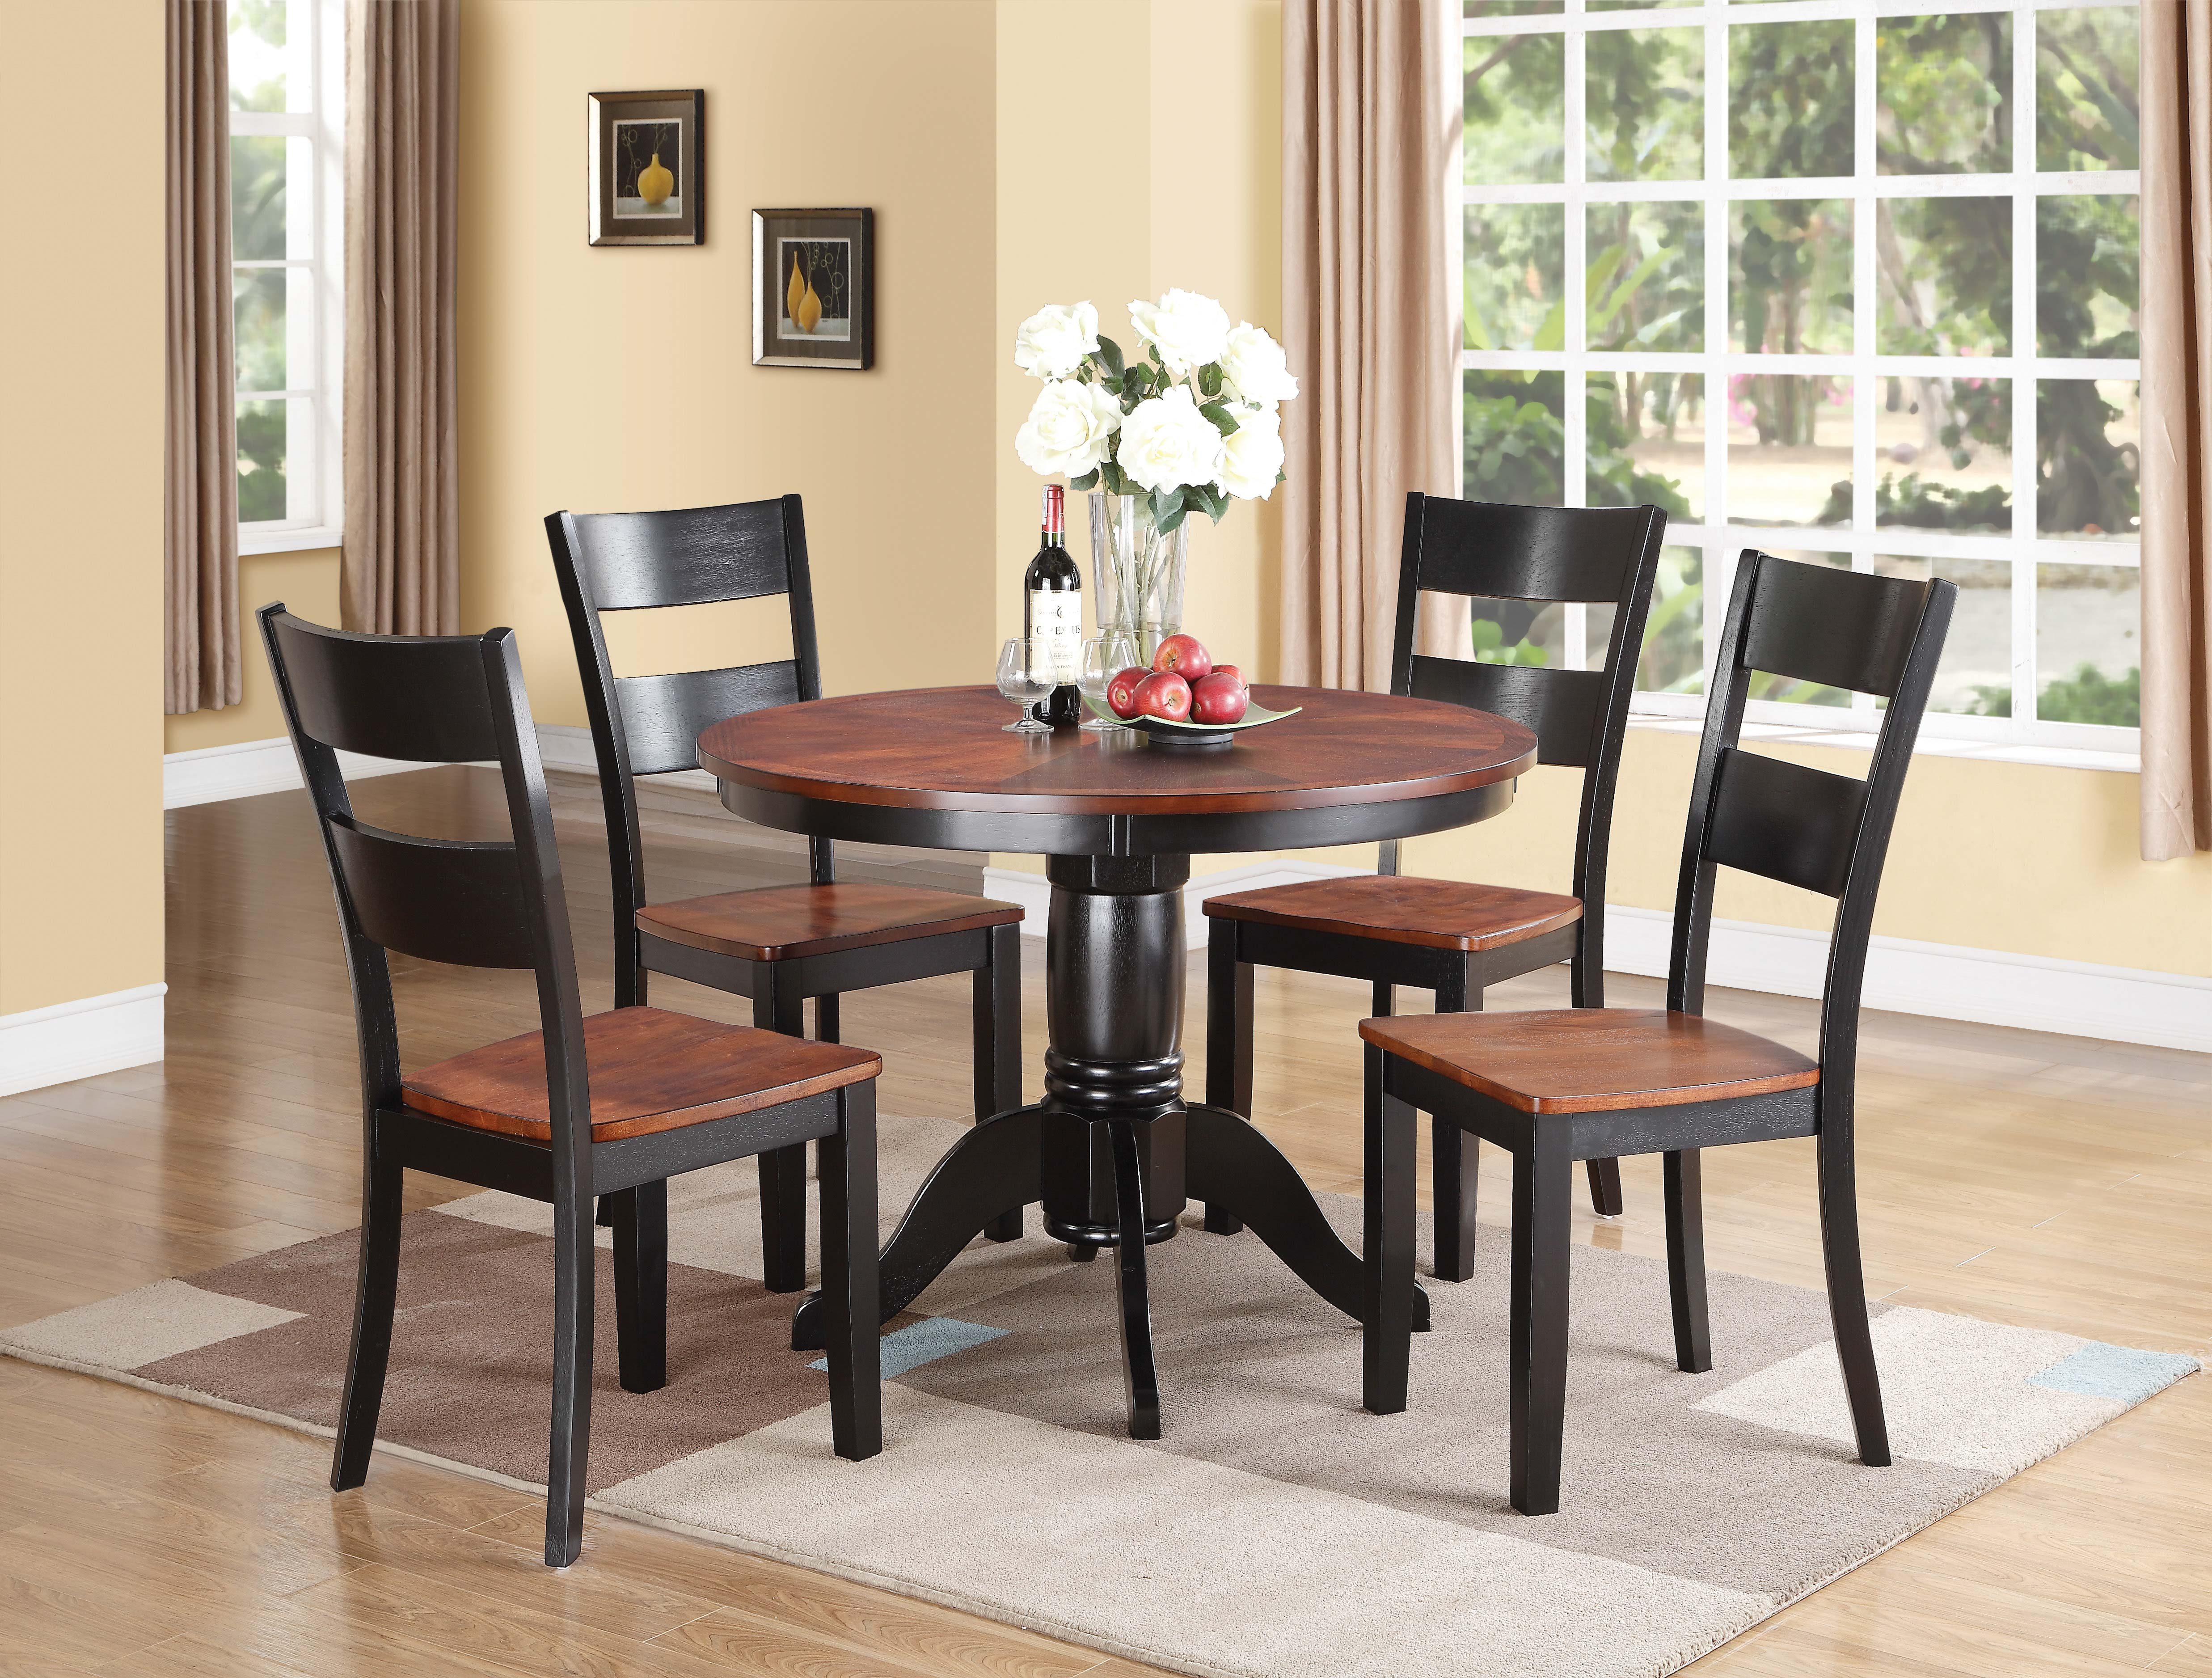 Black And Cherry Dining Table Black And Cherry Dining  : 8202BlackCherryPedestalTableDining from amlibgroup.com size 4948 x 3753 jpeg 1964kB